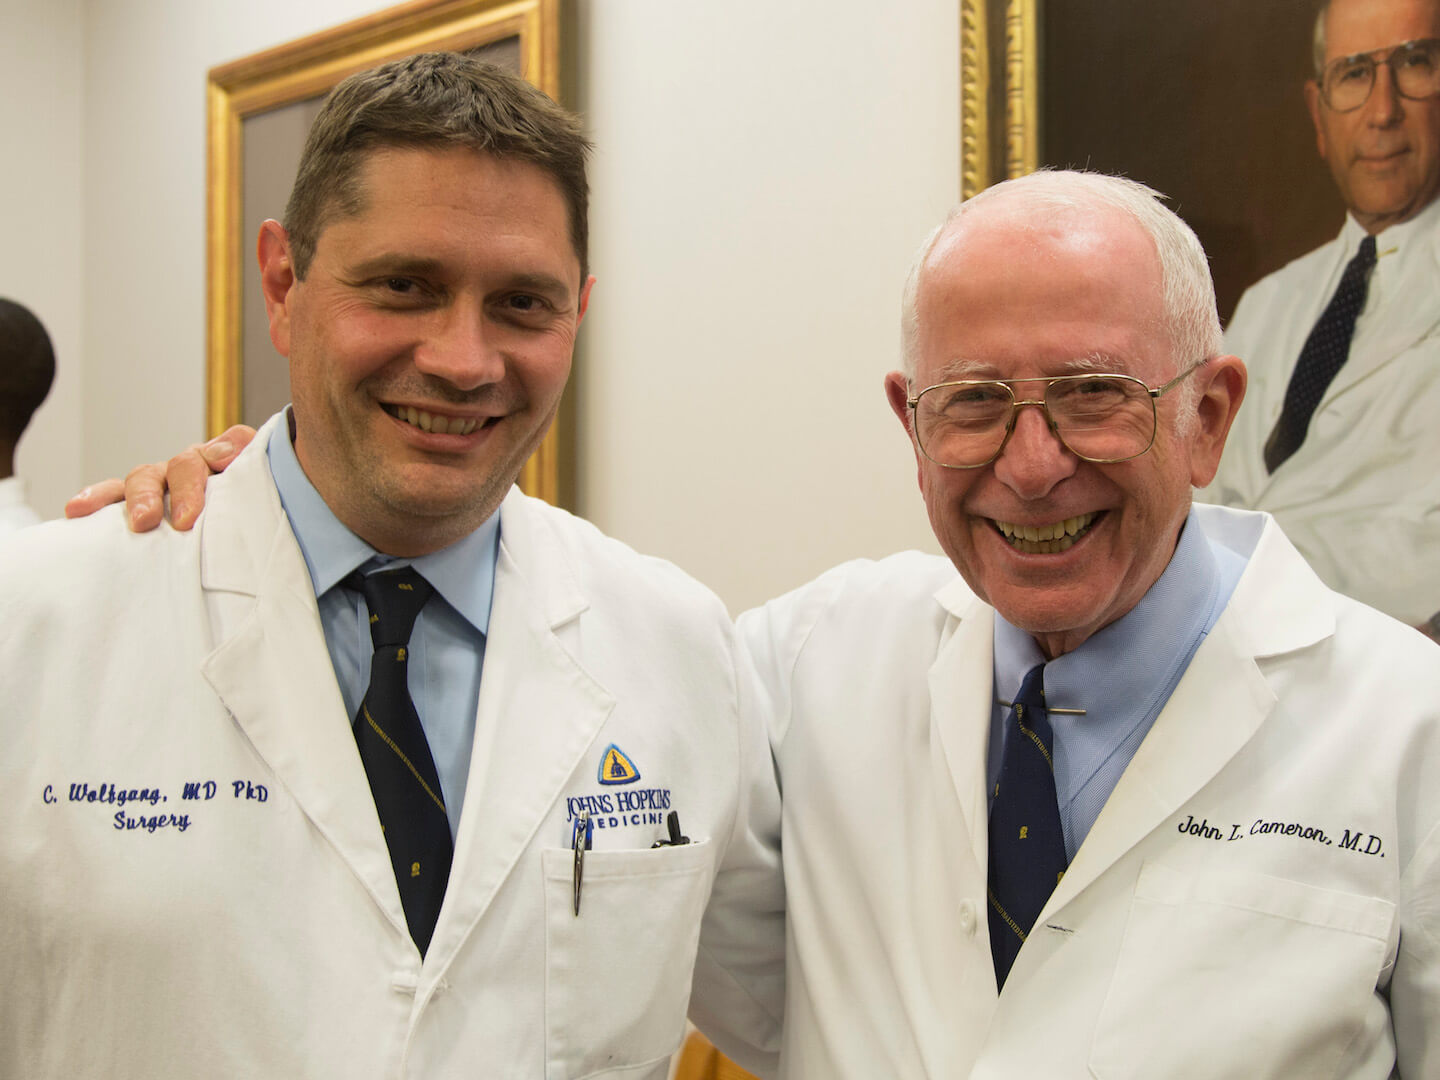 Dr. John Cameron and Dr. Christopher Wolfgang